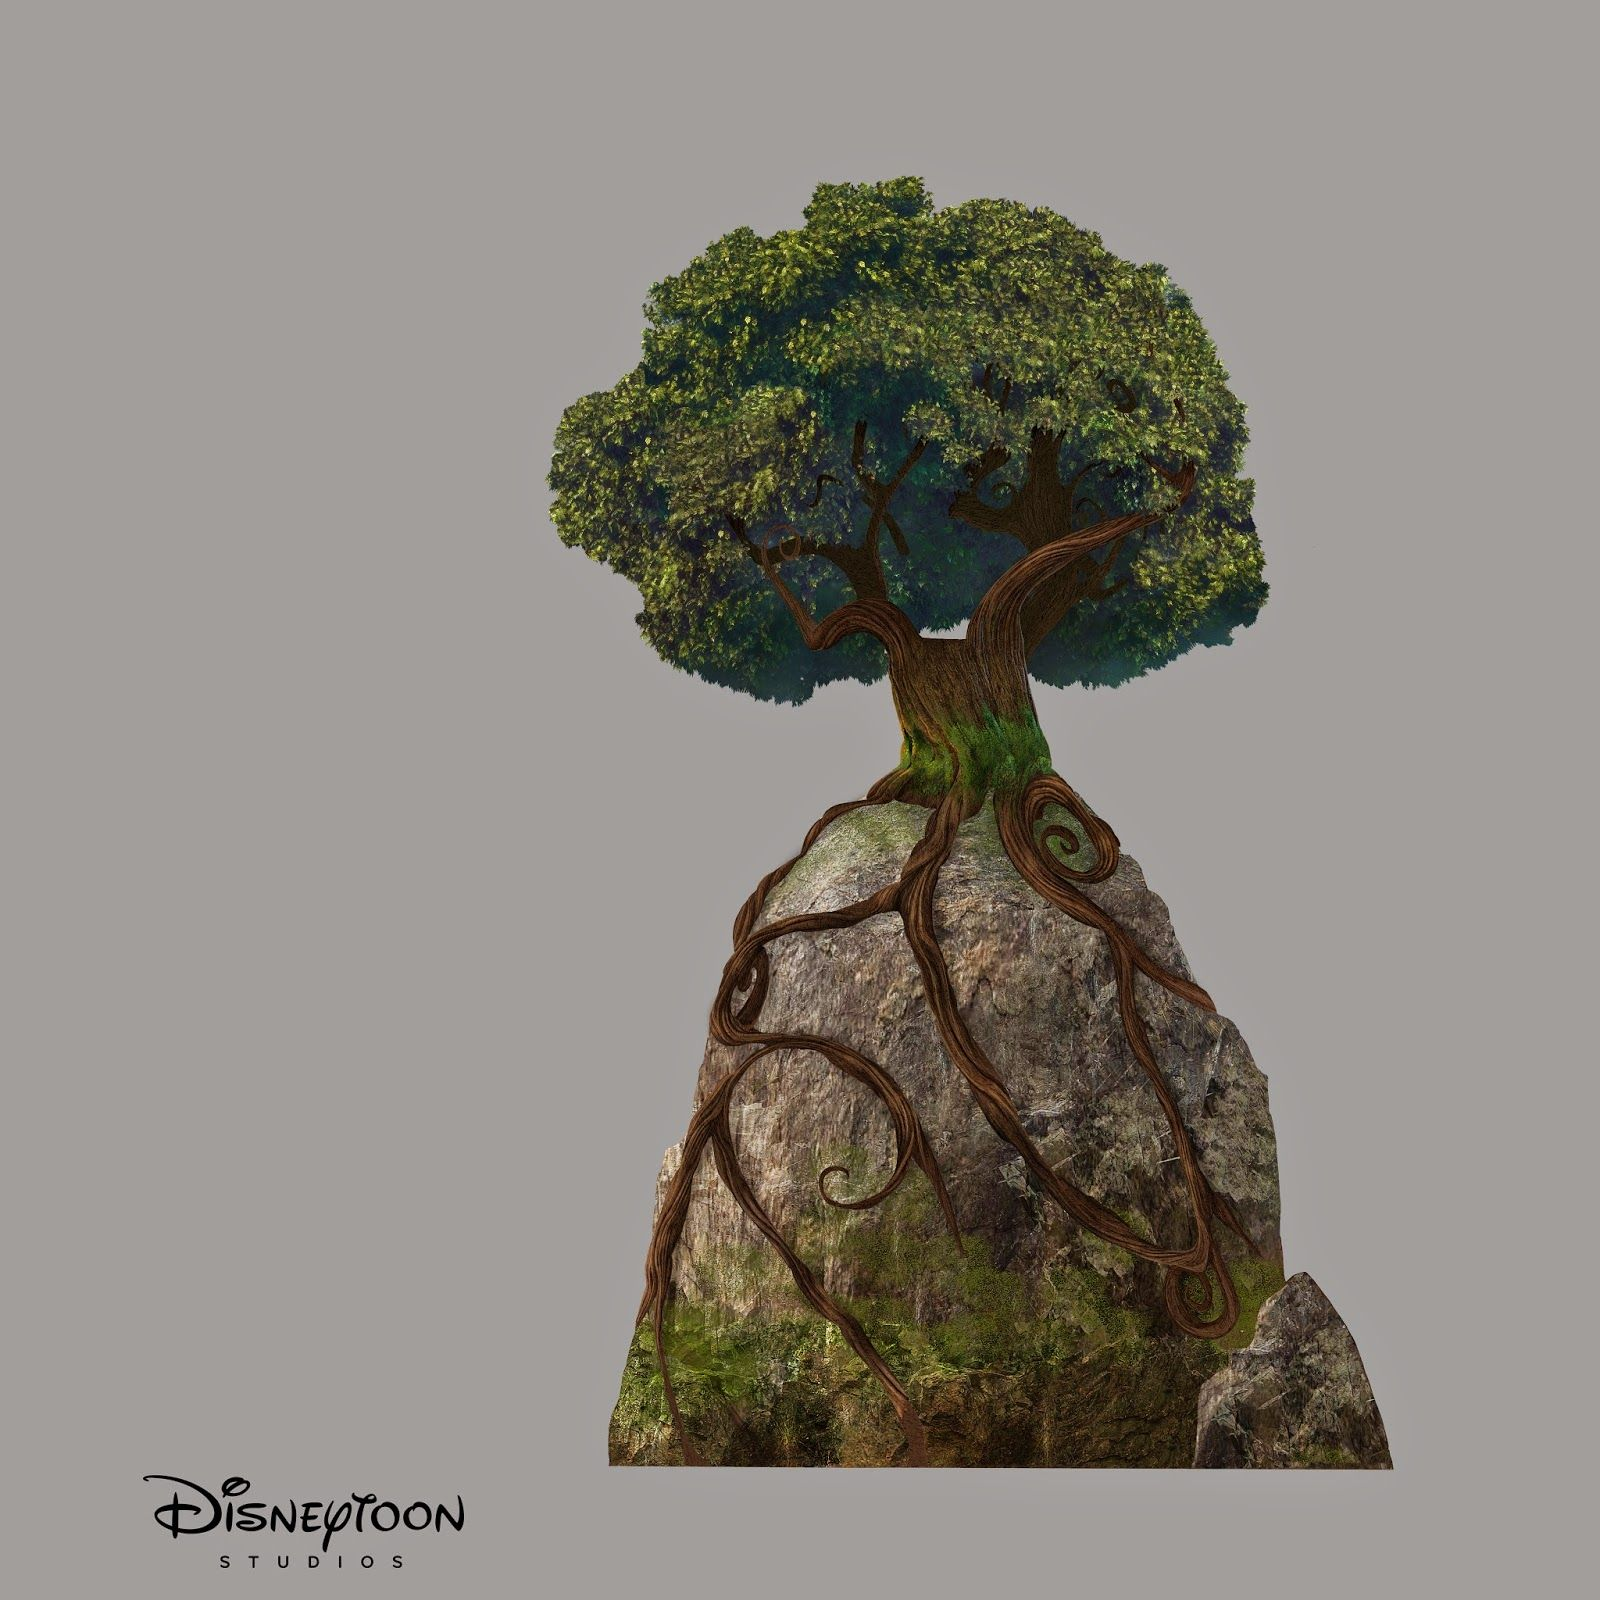 Sona_Sargsyan_Concept_Art_Illustration_tree_render.jpg (1600×1600)